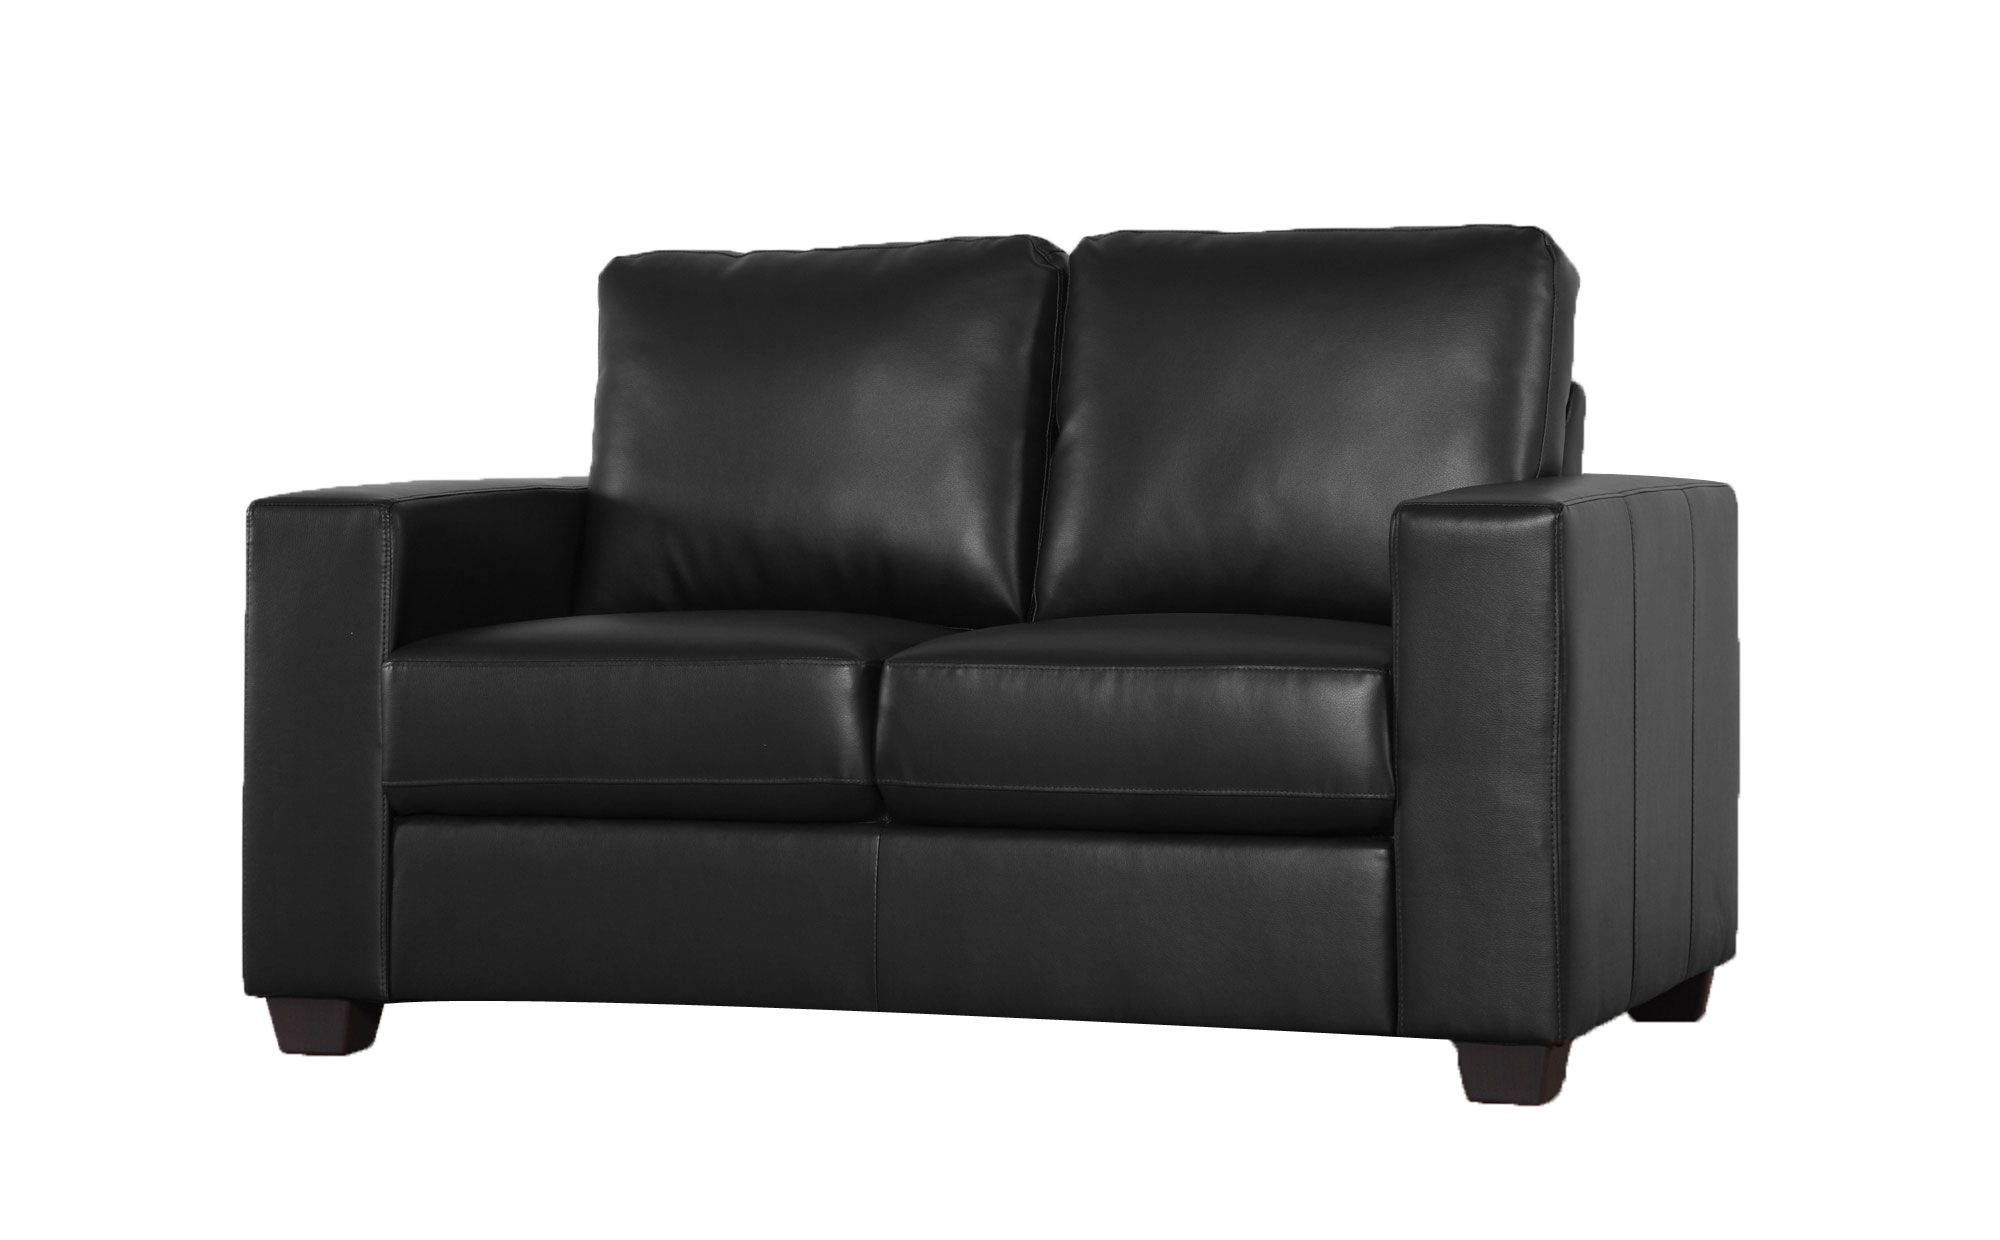 Pleasing Mission Black 2 Seater Leather Sofa Range 270 In 2019 Gmtry Best Dining Table And Chair Ideas Images Gmtryco